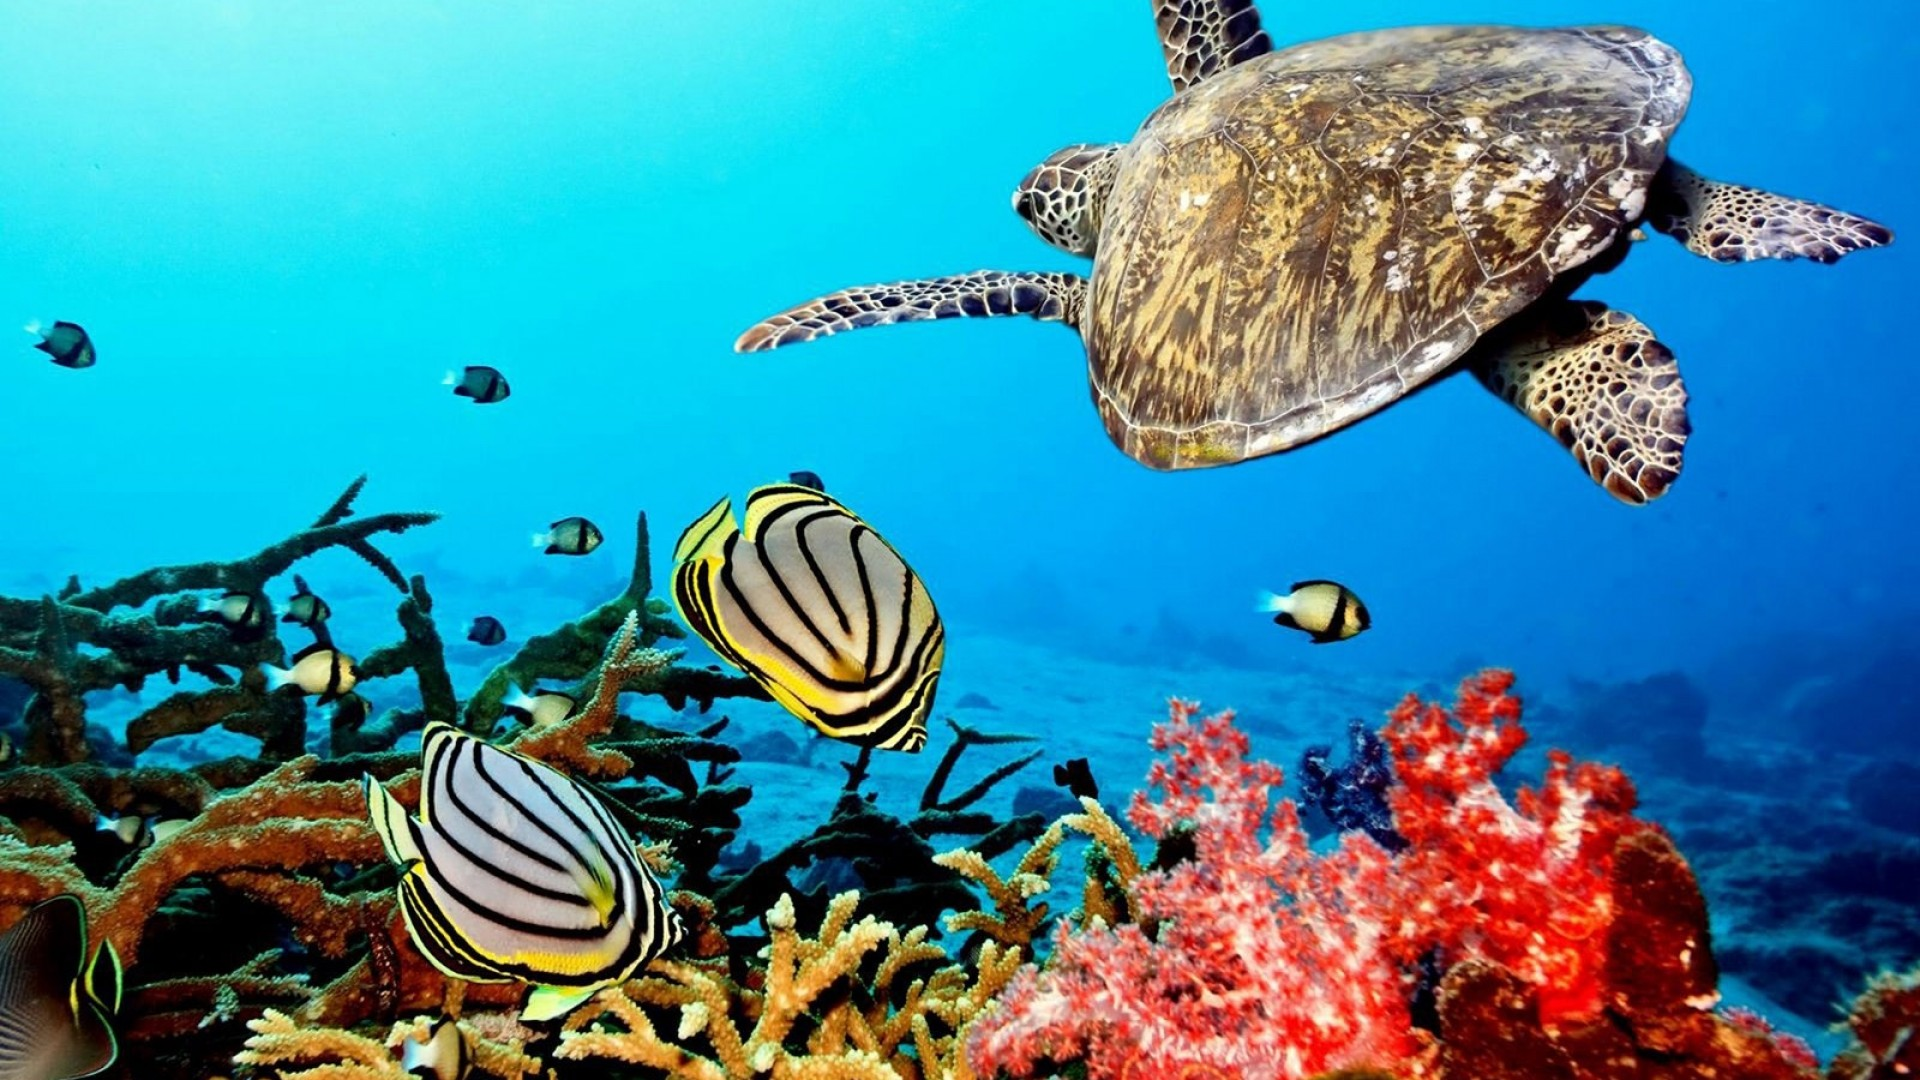 Wallpapers for Gt Coral Reef Wallpaper Xpx Corals Hd